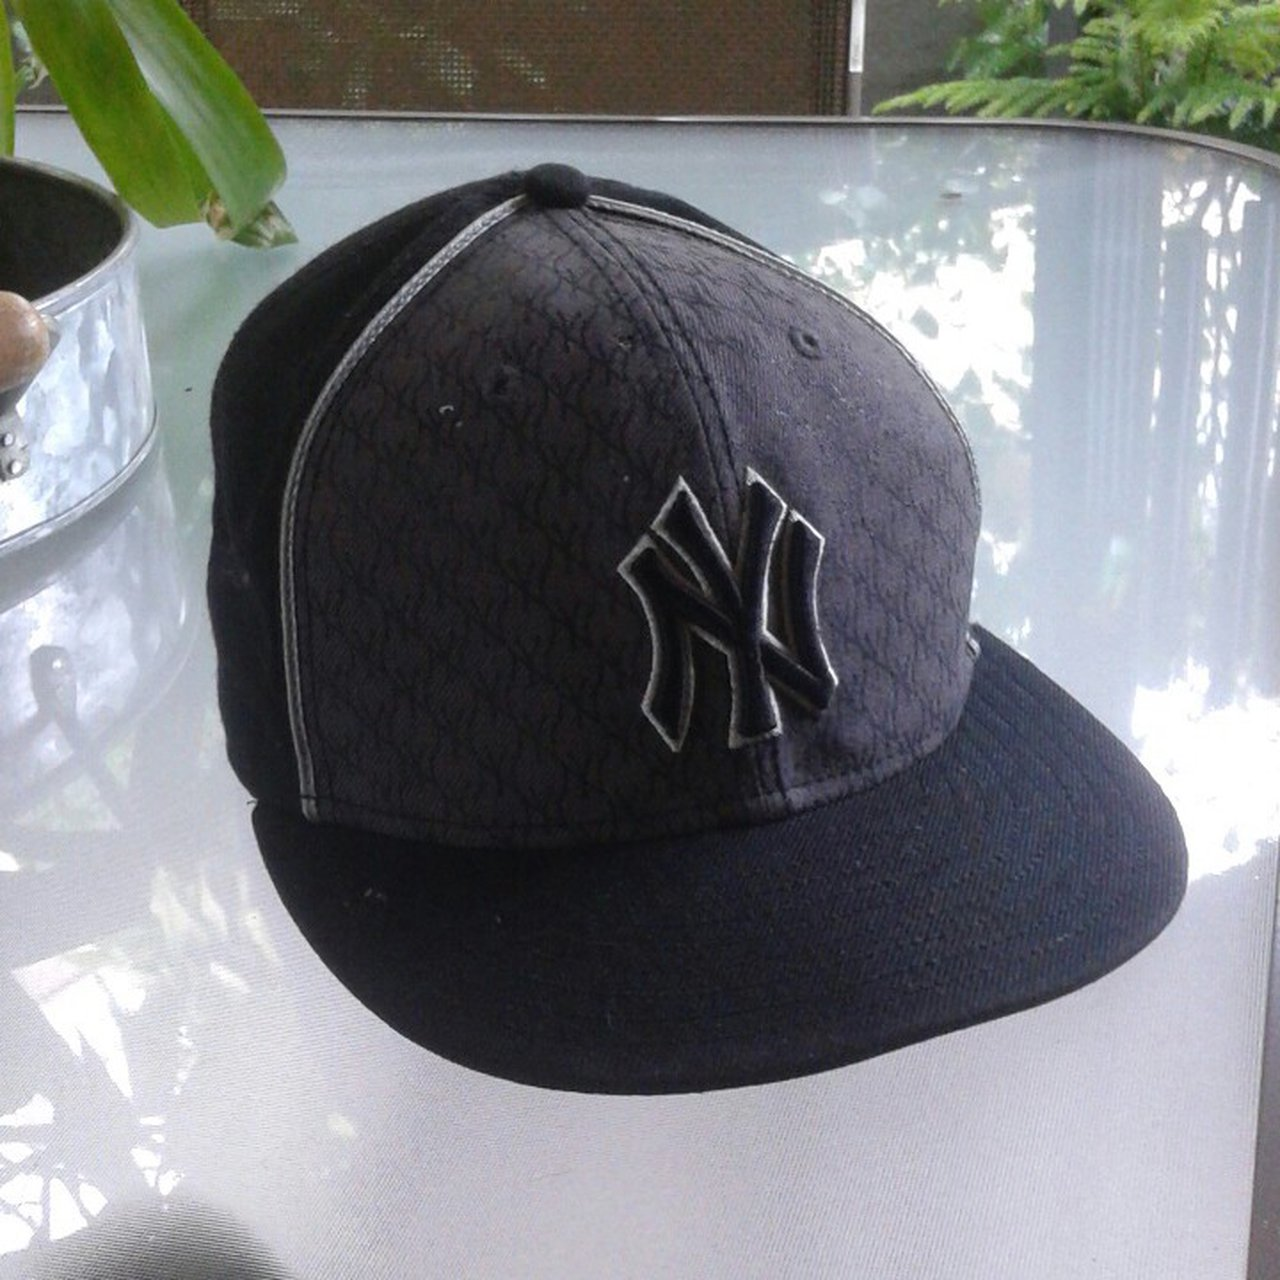 New York Yankees Fitted cap Great condition  newyorkyankees - Depop b57a75191c15